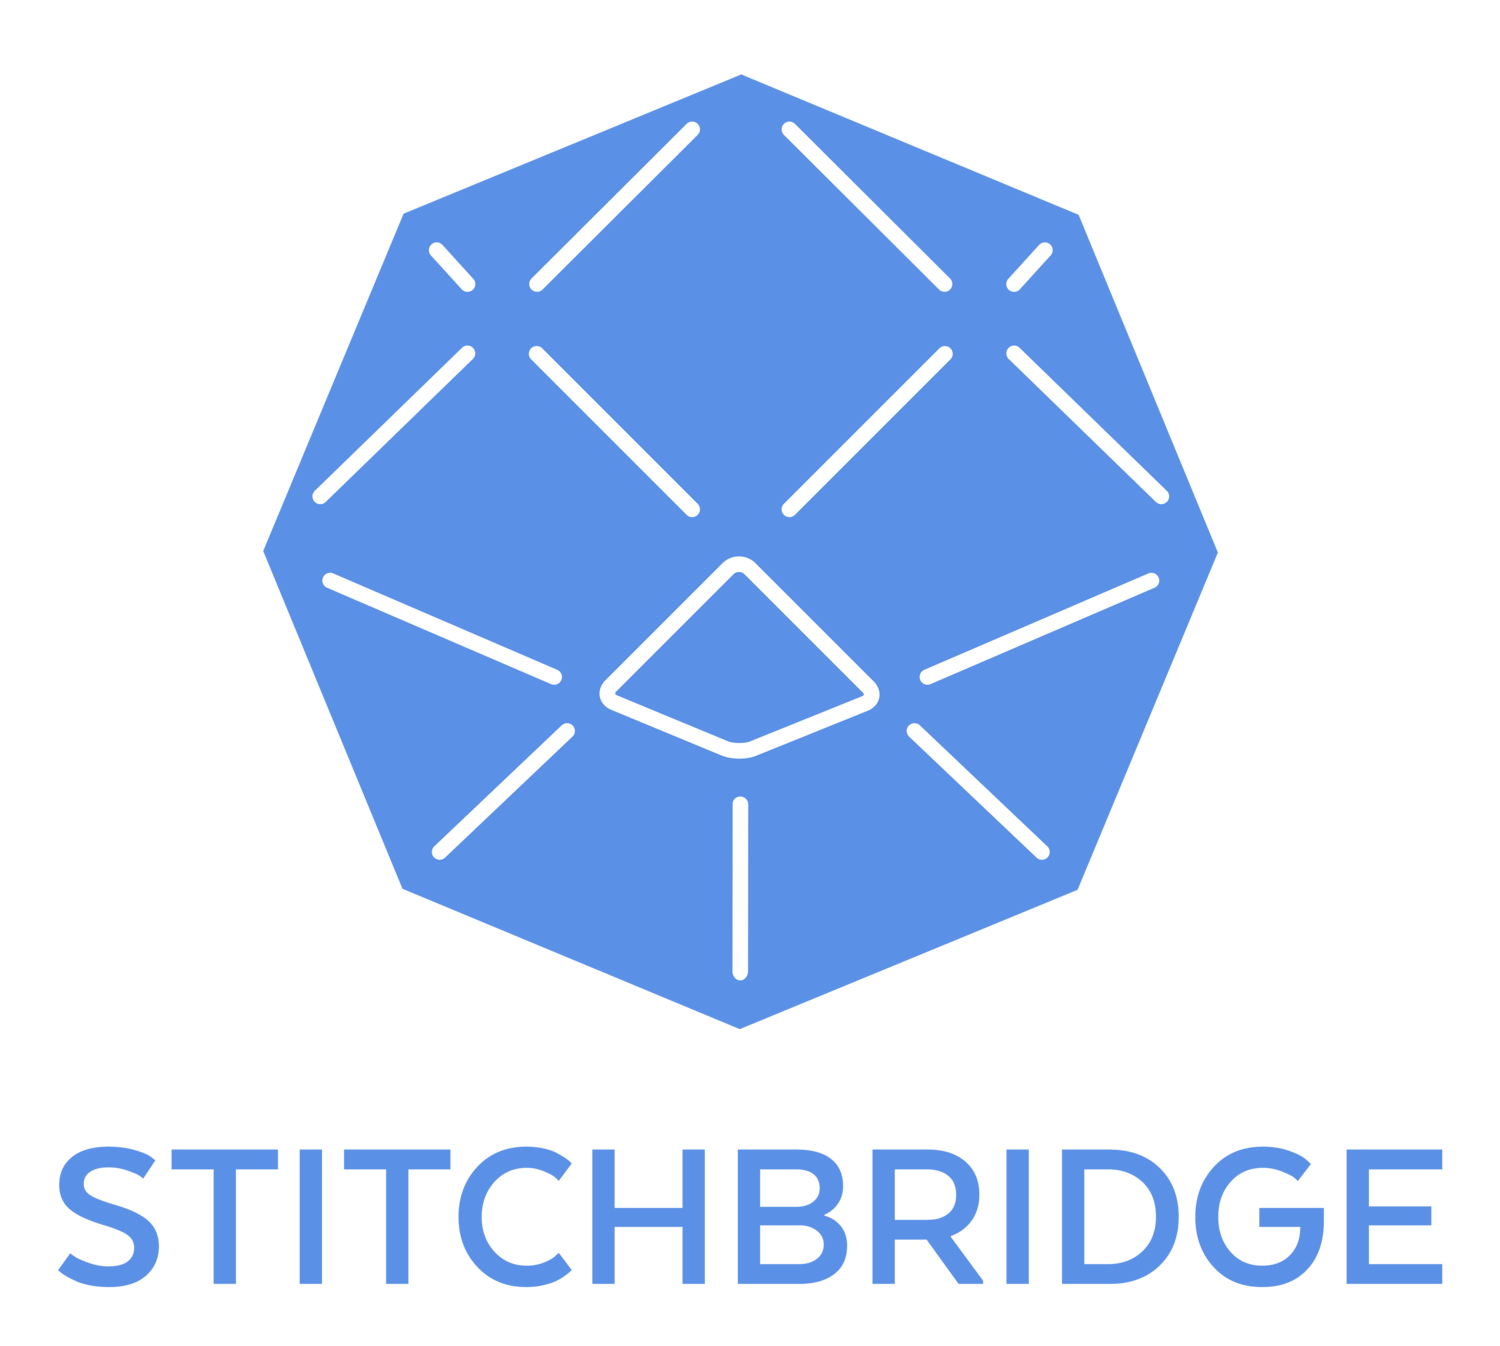 Stitchbridge